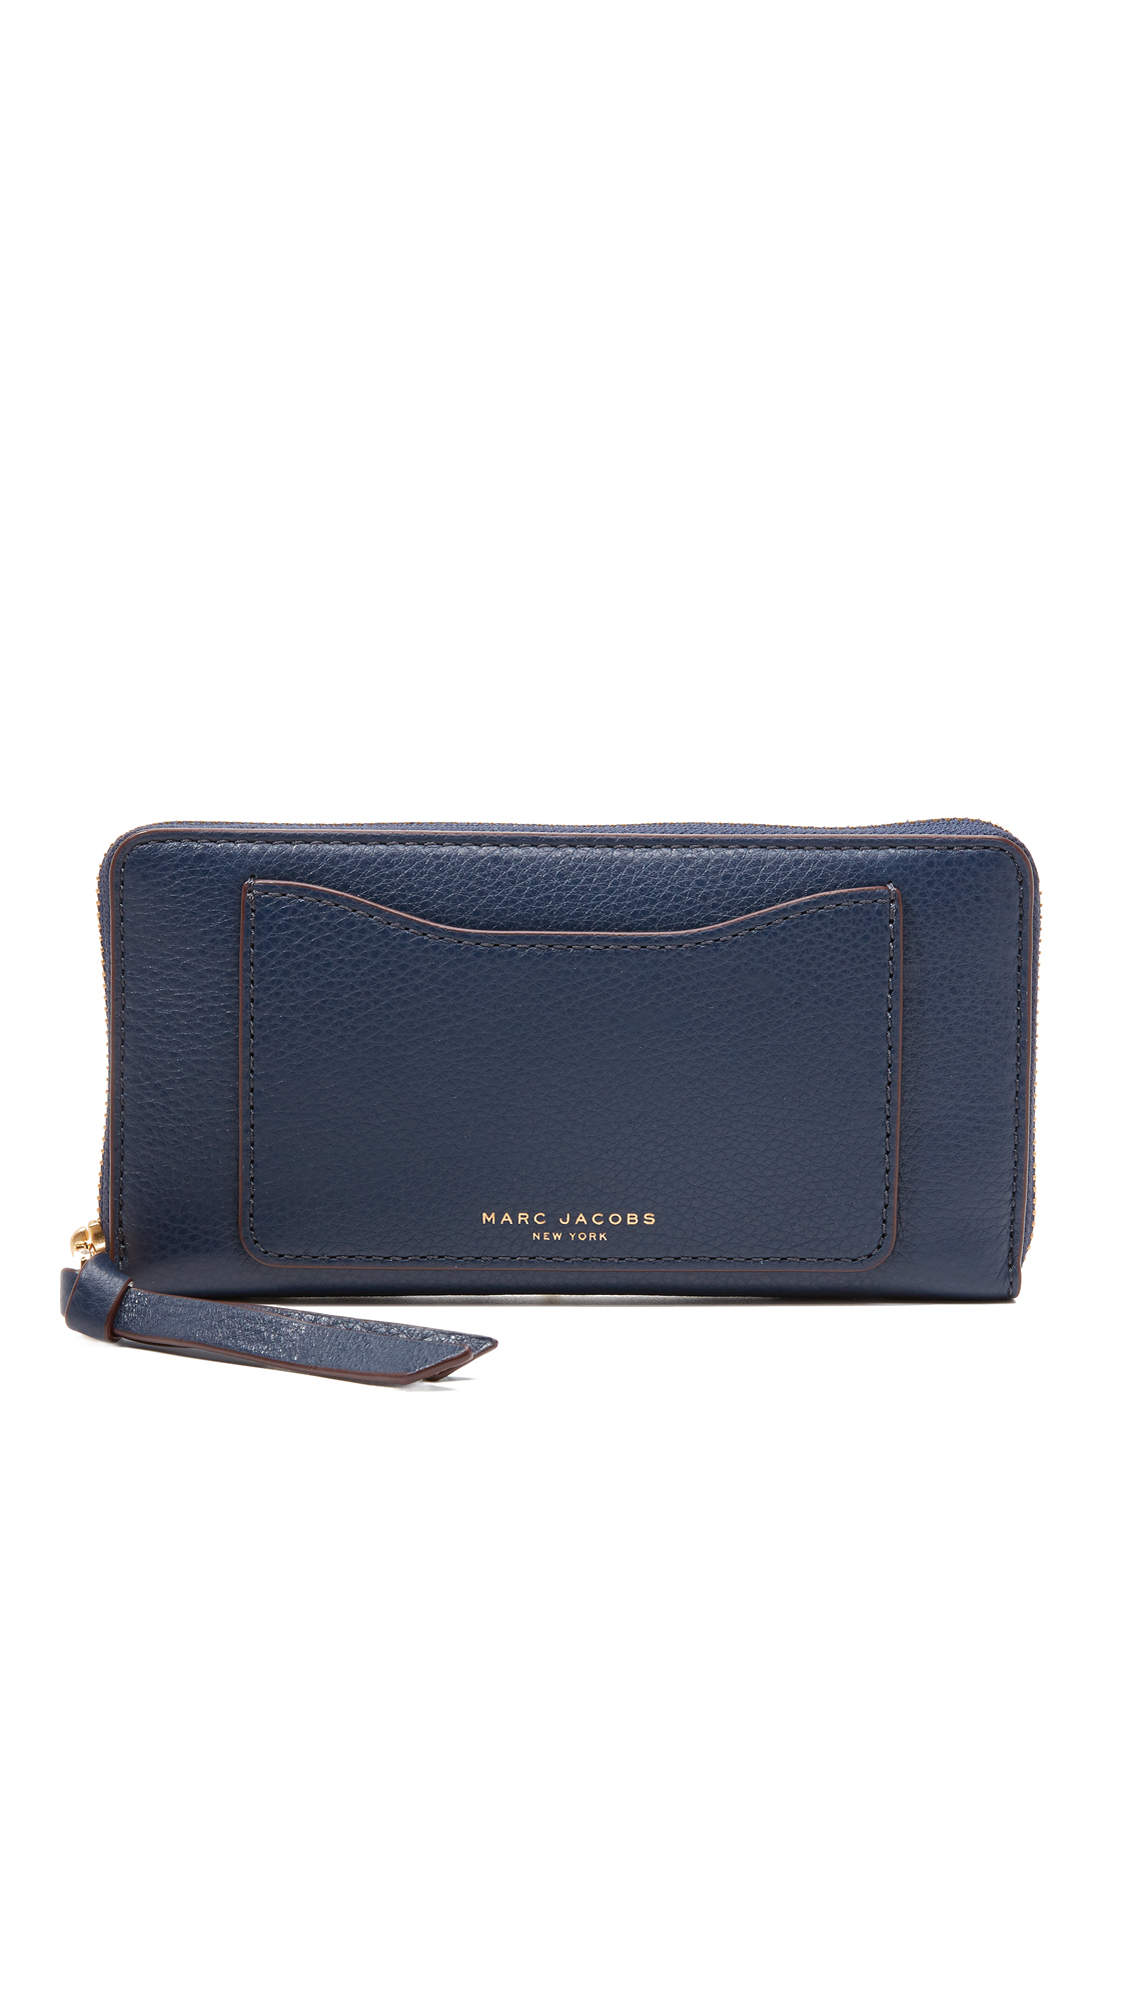 b5dfb372b Marc Jacobs Recruit Wallet Blue | Stanford Center for Opportunity ...